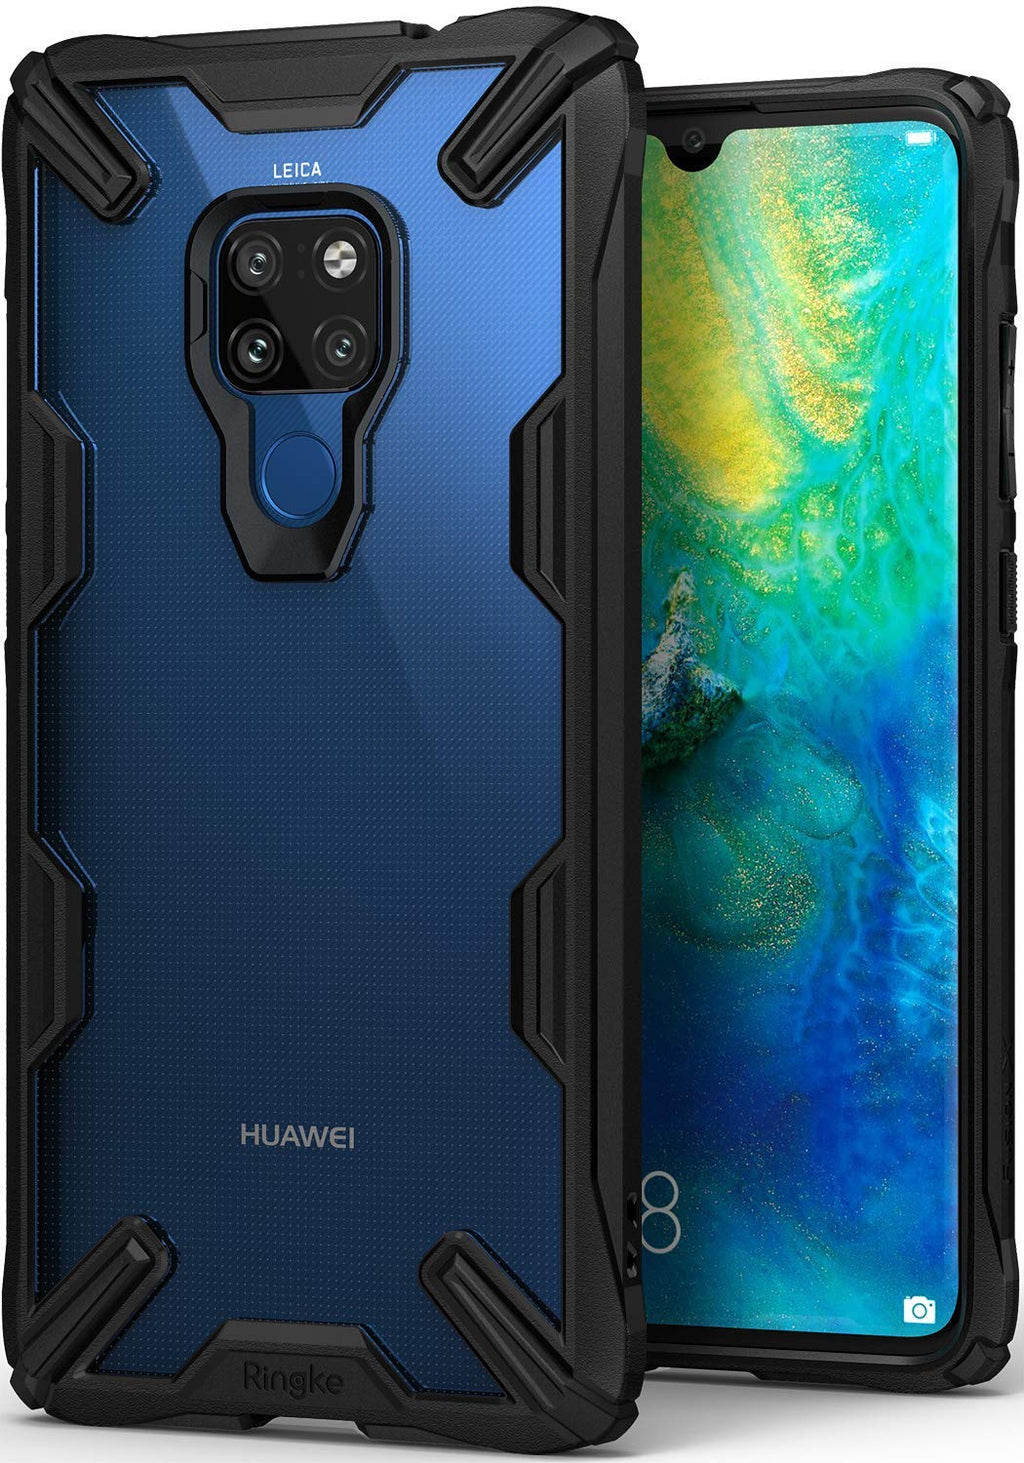 huawei mate 20 fusion-x case black